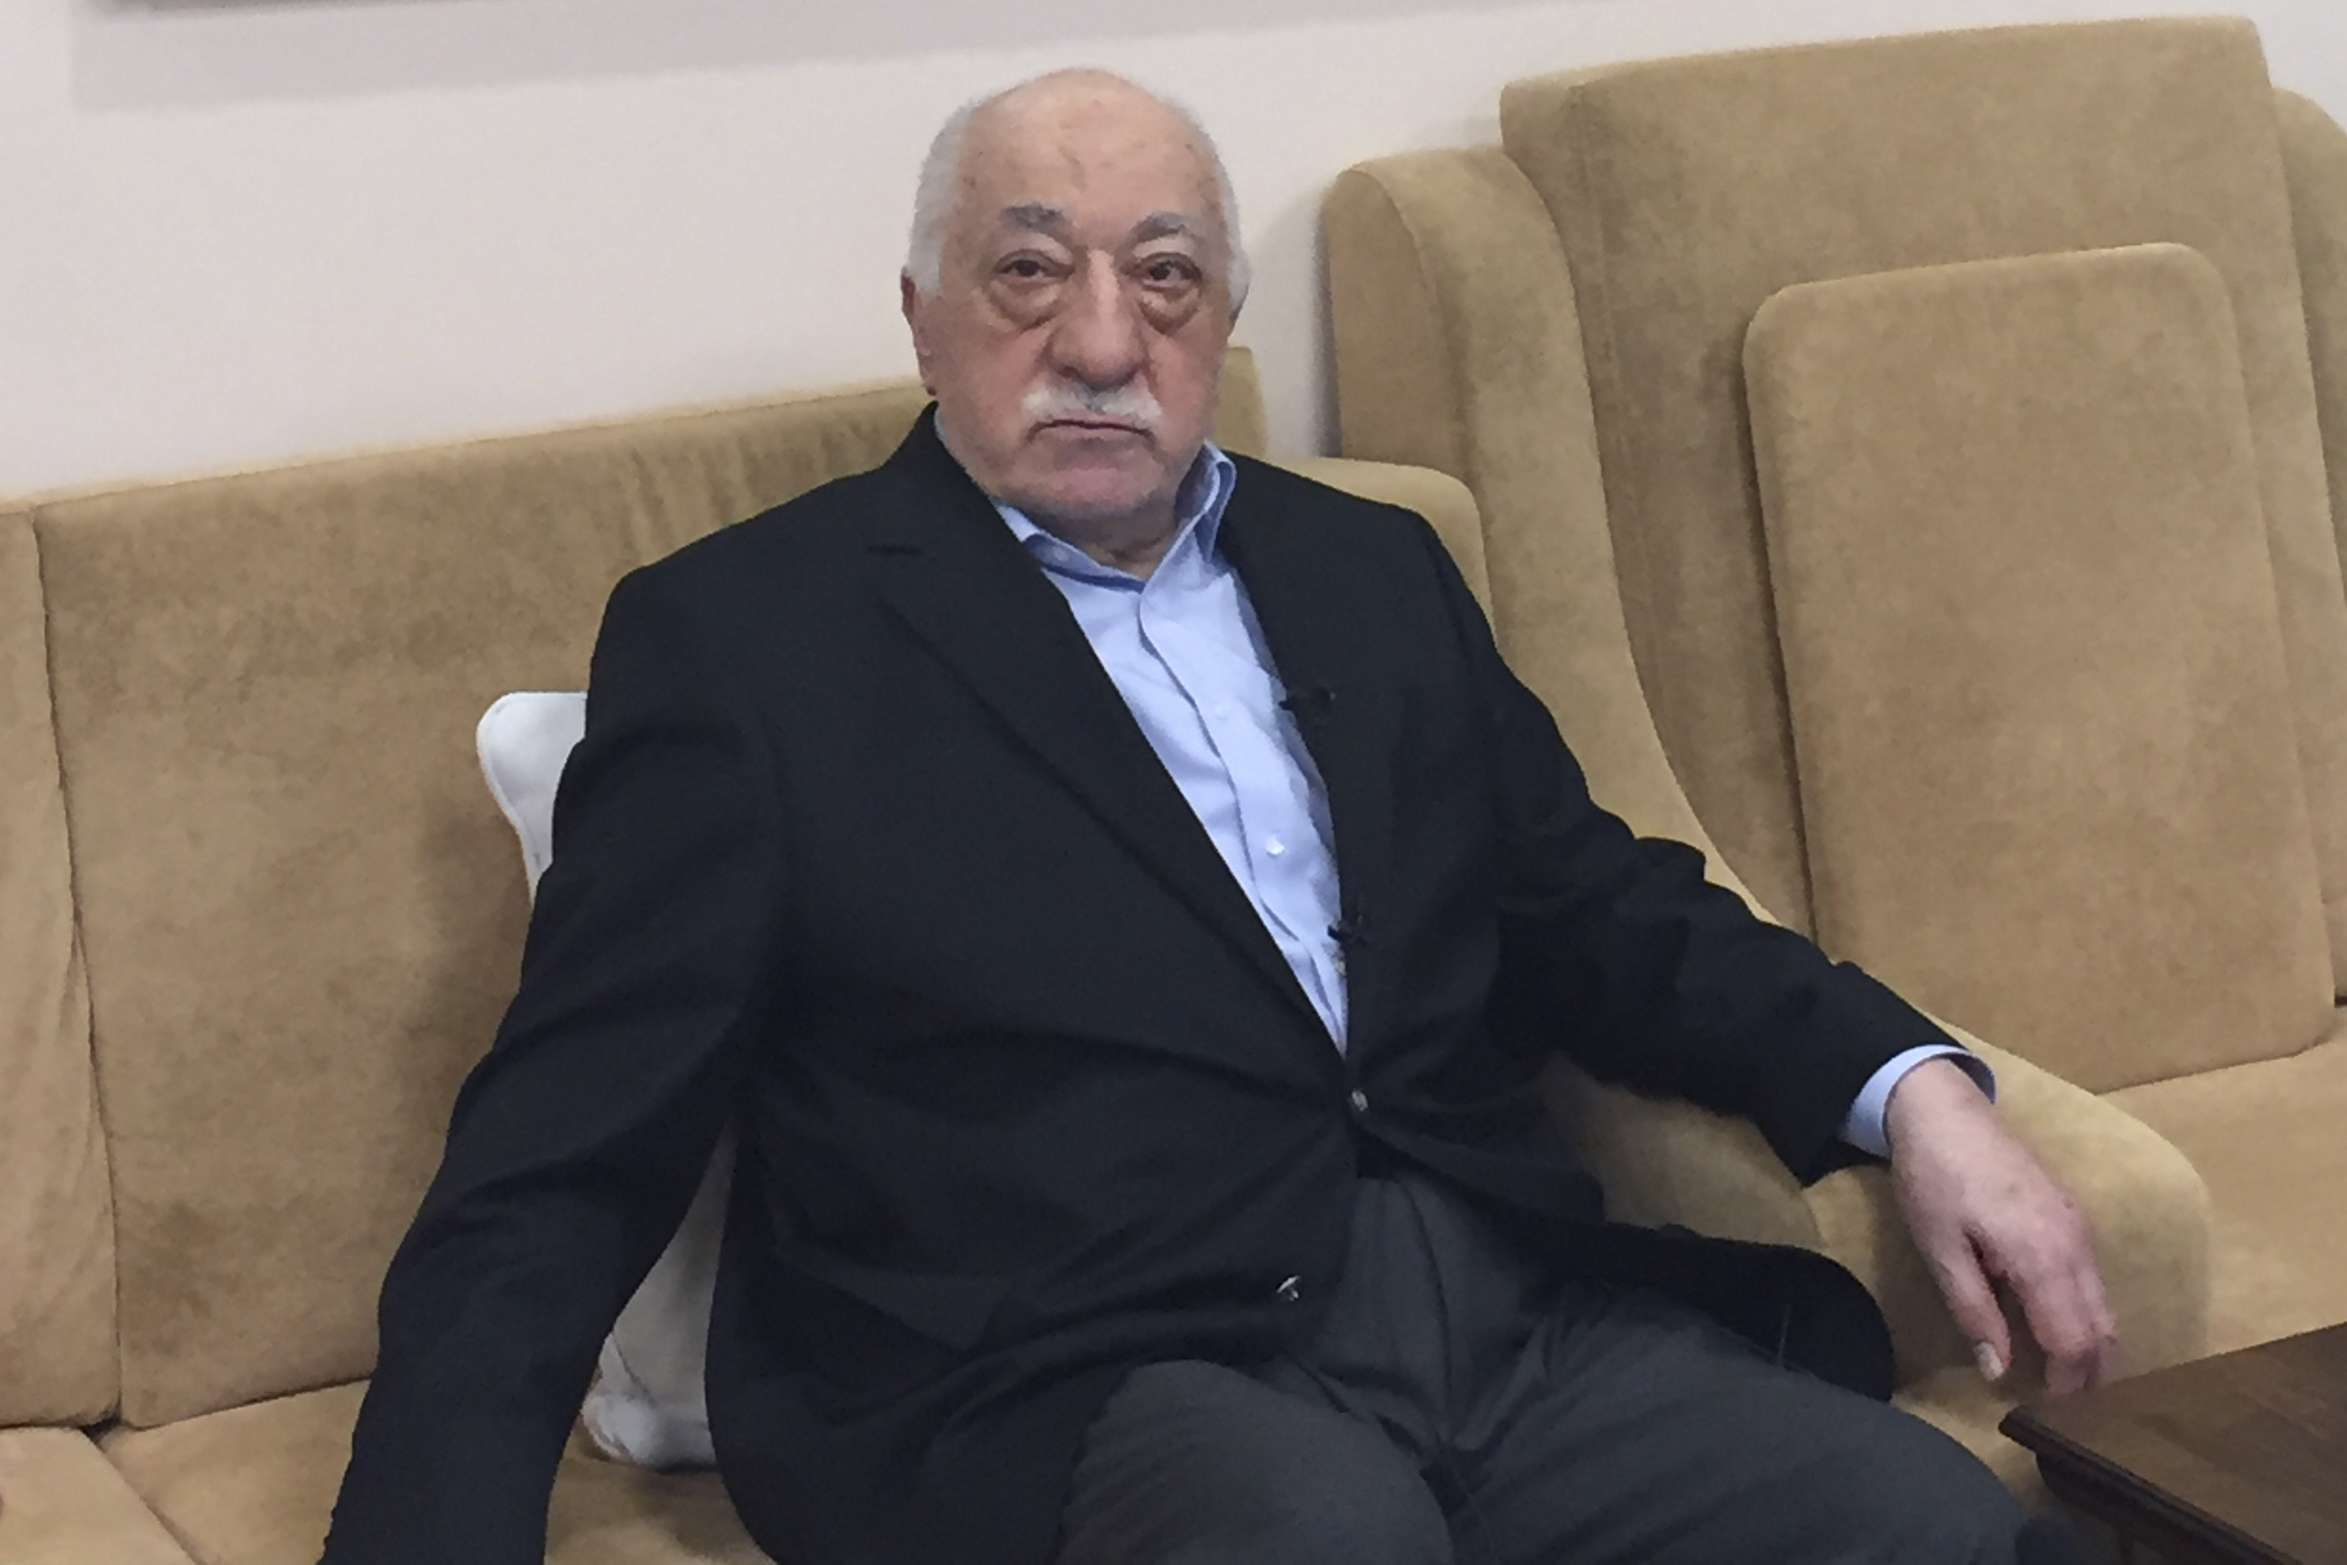 In this file photo taken on July 18, 2016, Turkish cleric and opponent to the Erdogan regime Fethullah Gulen poses at his residence in Saylorsburg, Pennsylvania. (AFP)